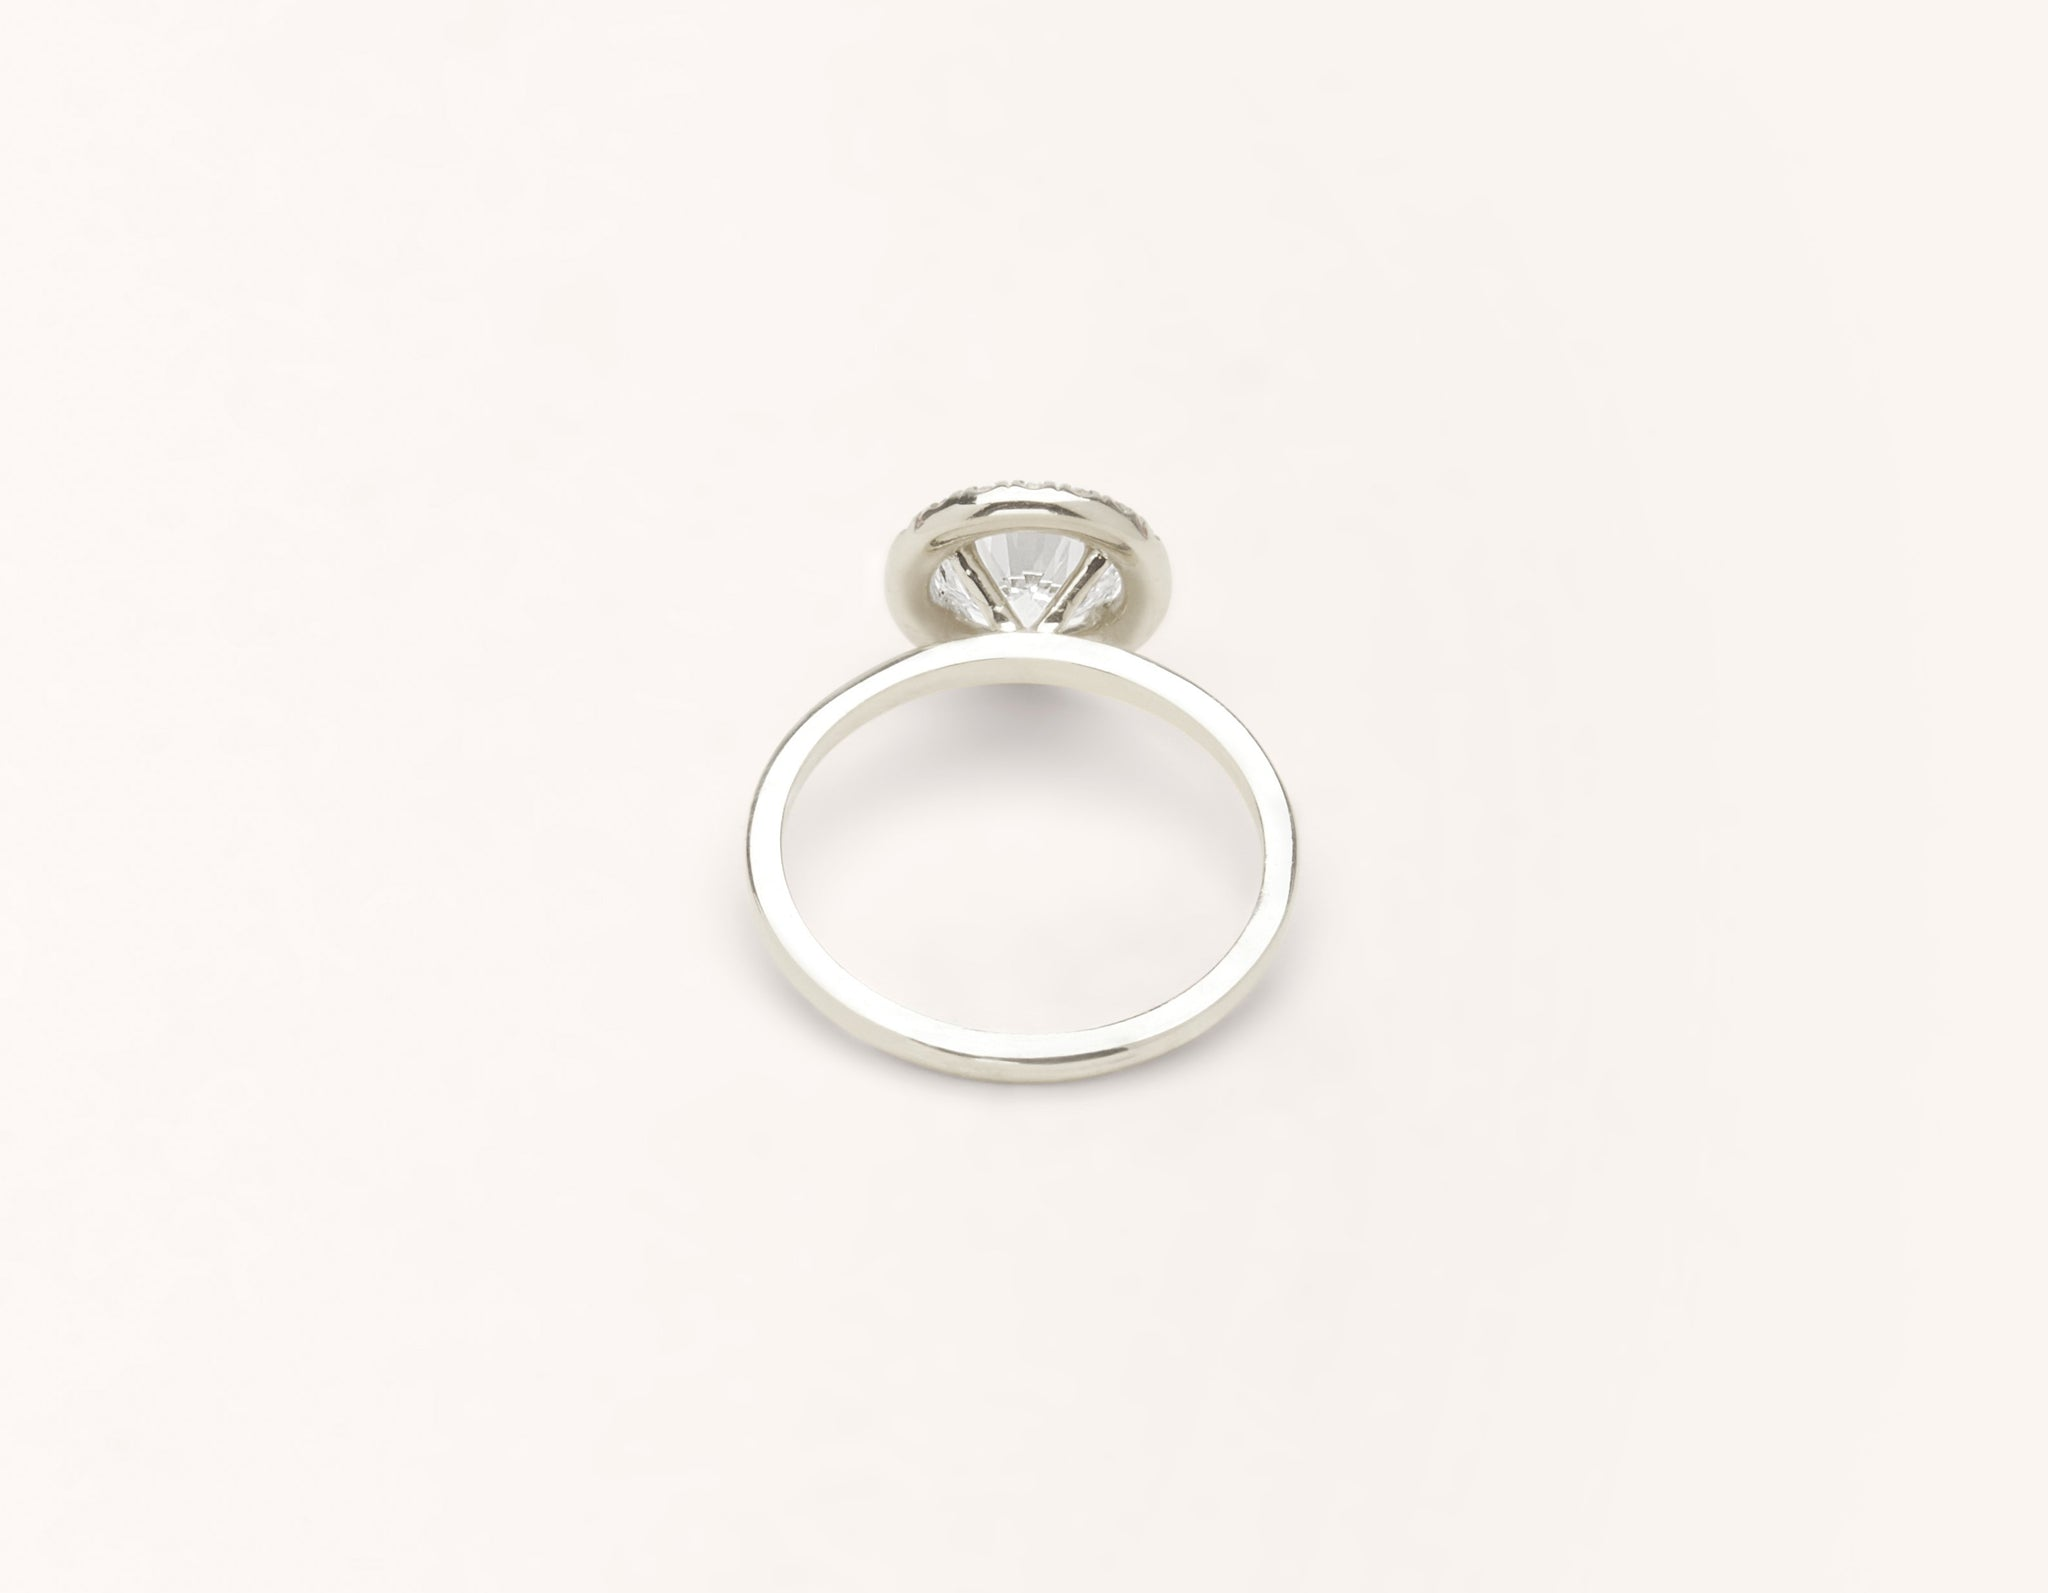 Minimalist 18k solid white gold The Halo engagement ring 1 ct round diamond Vrai and Oro